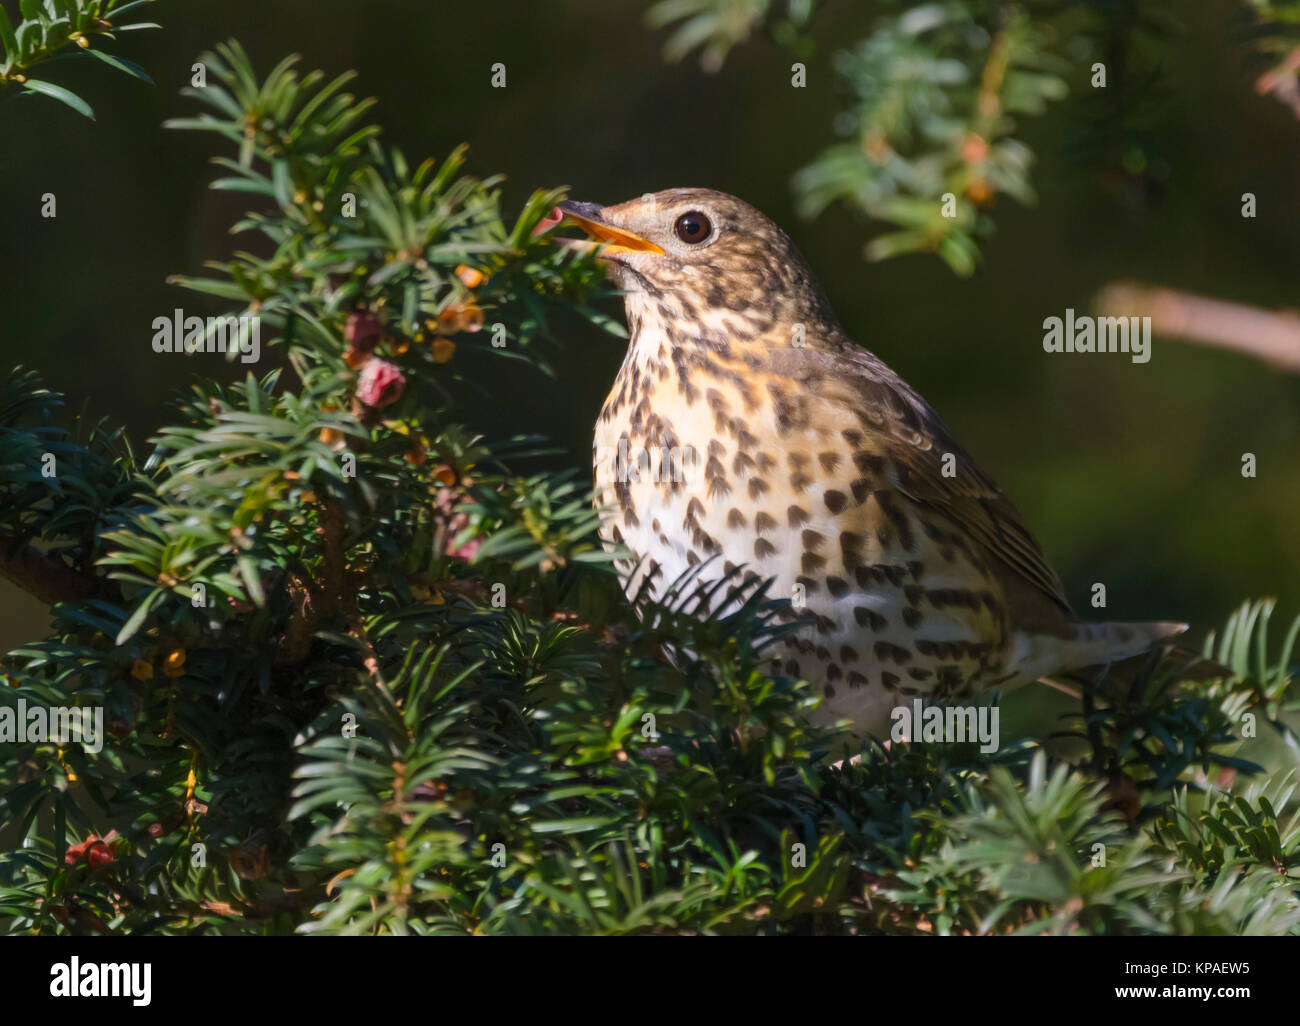 Adult Song Thrush (Turdus philomelos) perched in a tree feeding off fruiit in Winter, in West Sussex, England, UK. - Stock Image